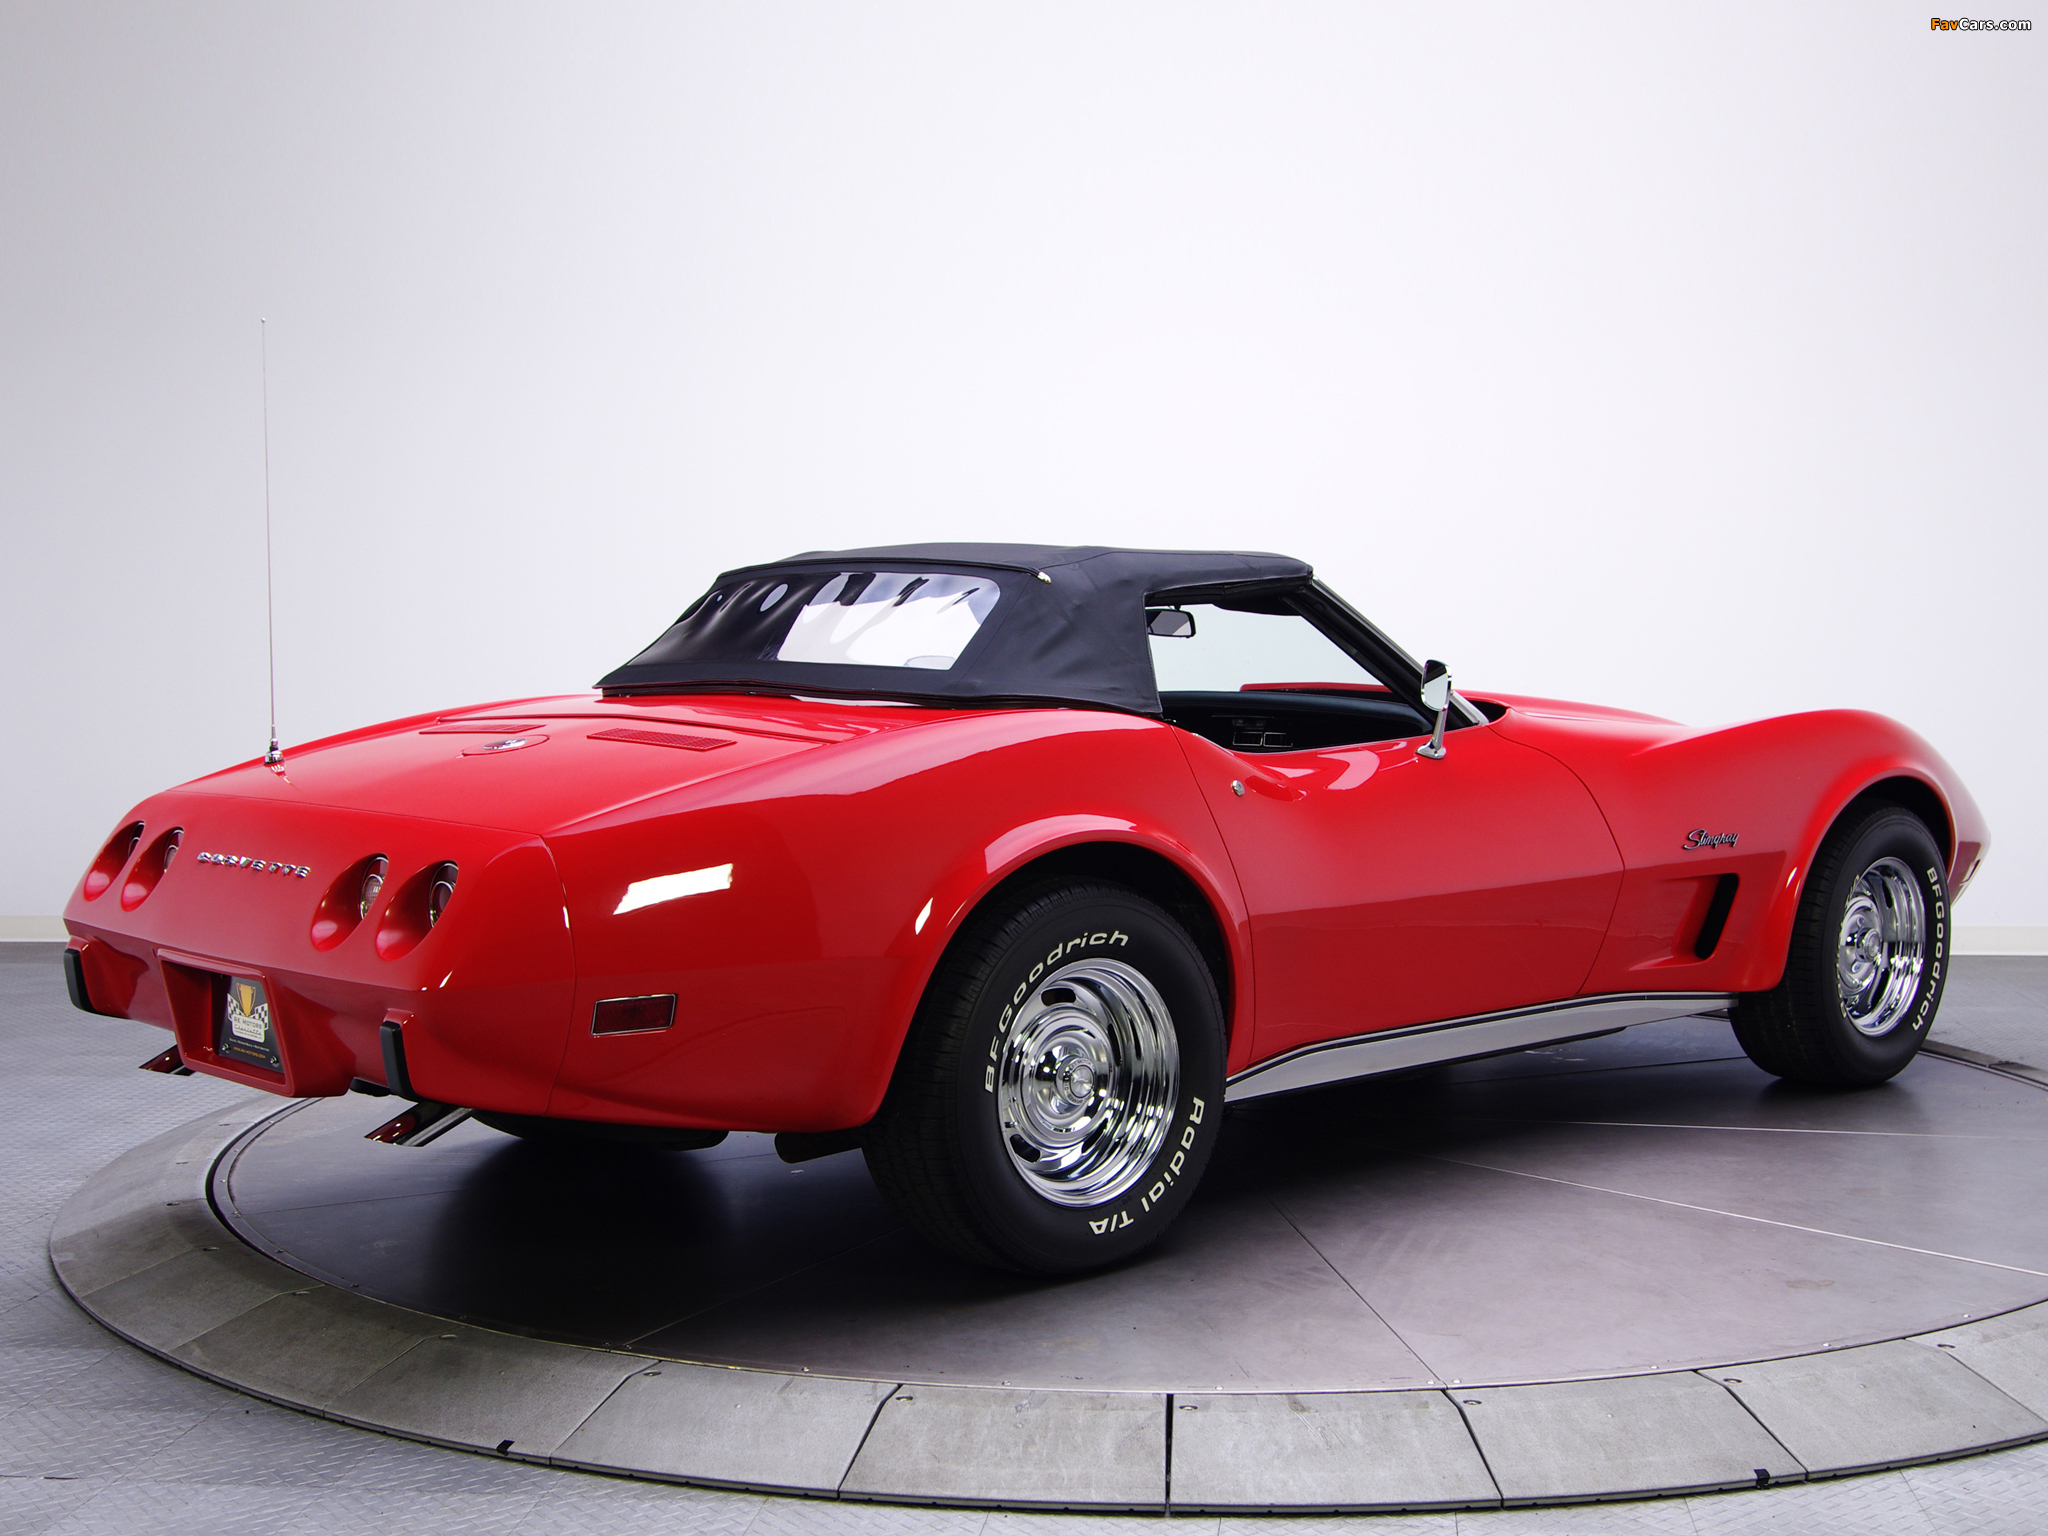 photos of corvette stingray convertible c3 1974 75 2048x1536. Black Bedroom Furniture Sets. Home Design Ideas